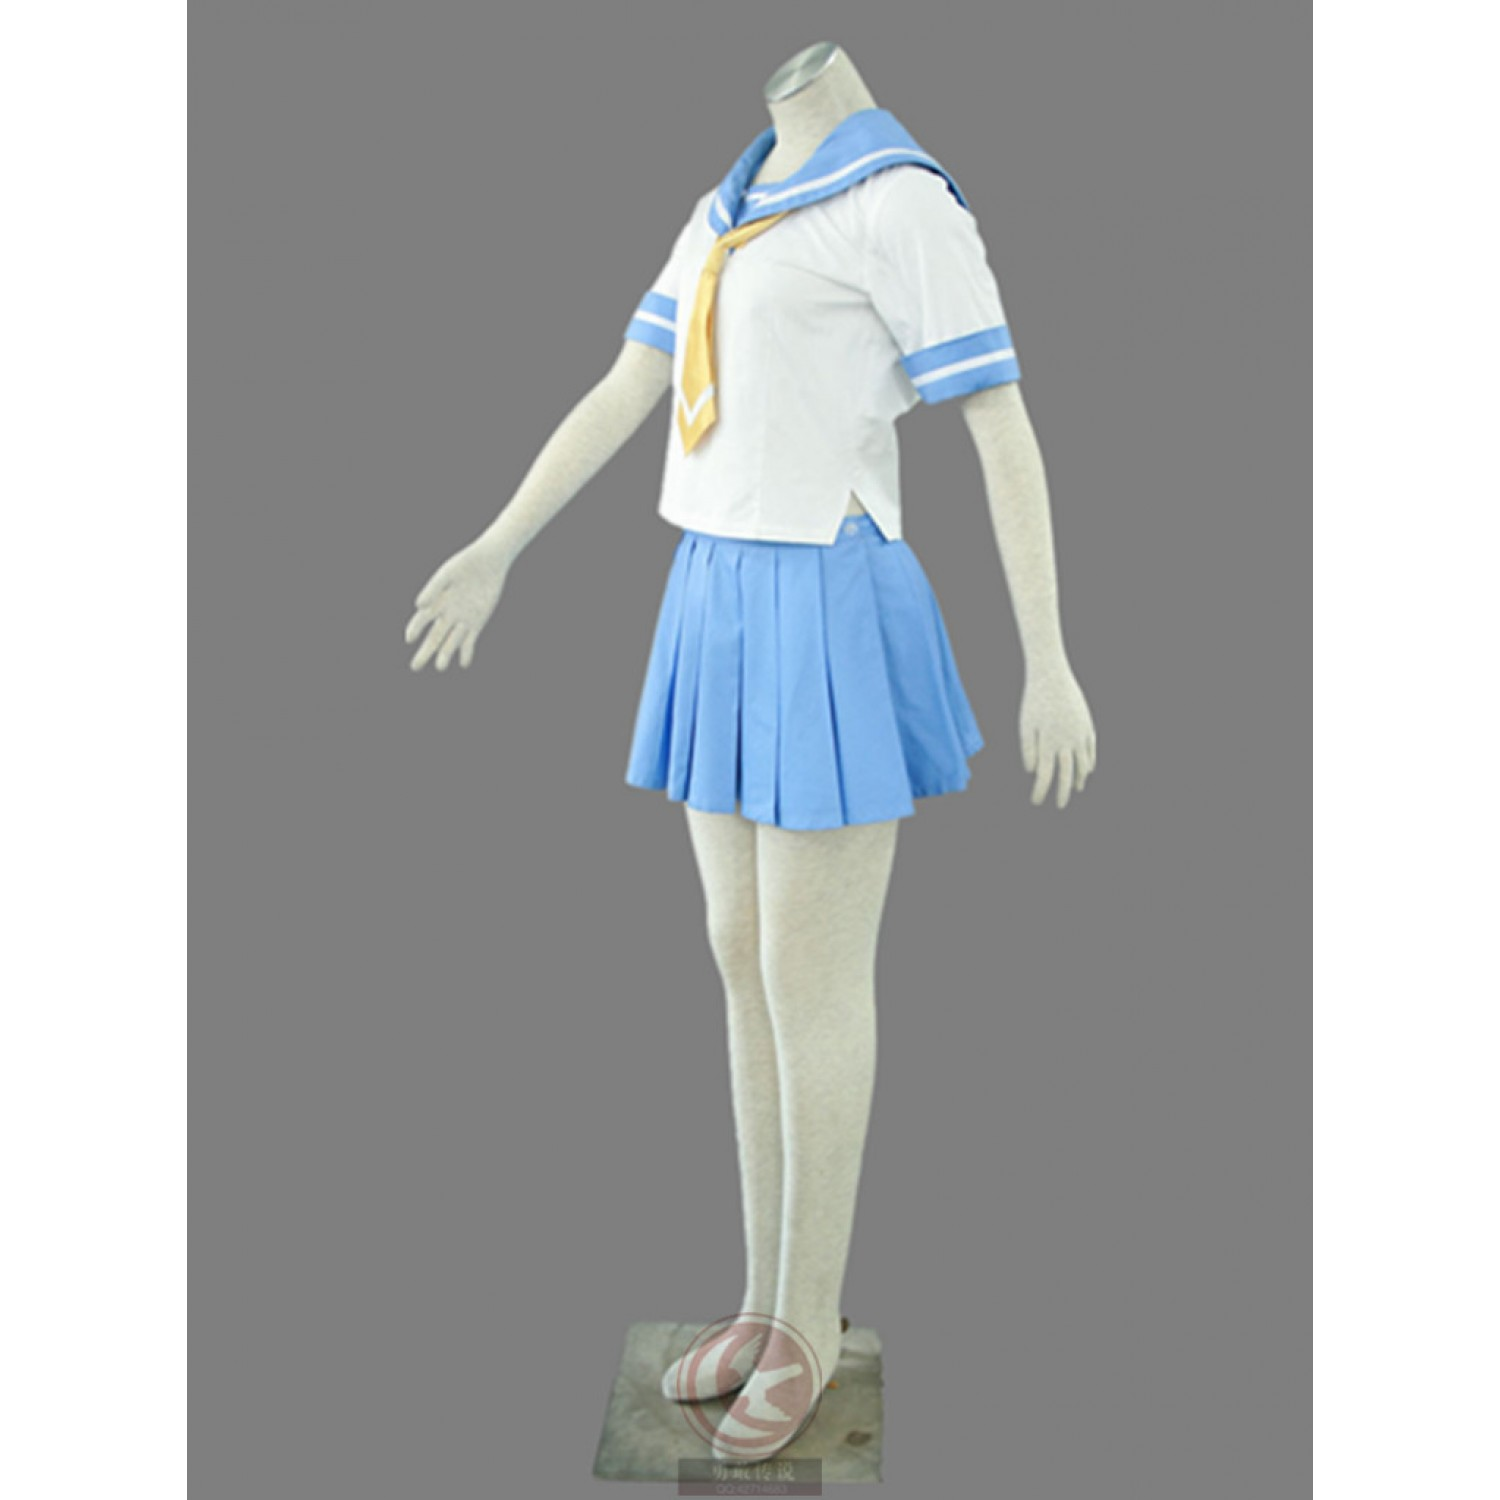 When They Cry Ryugu Rena Student Uniforms Cosplay Costumes